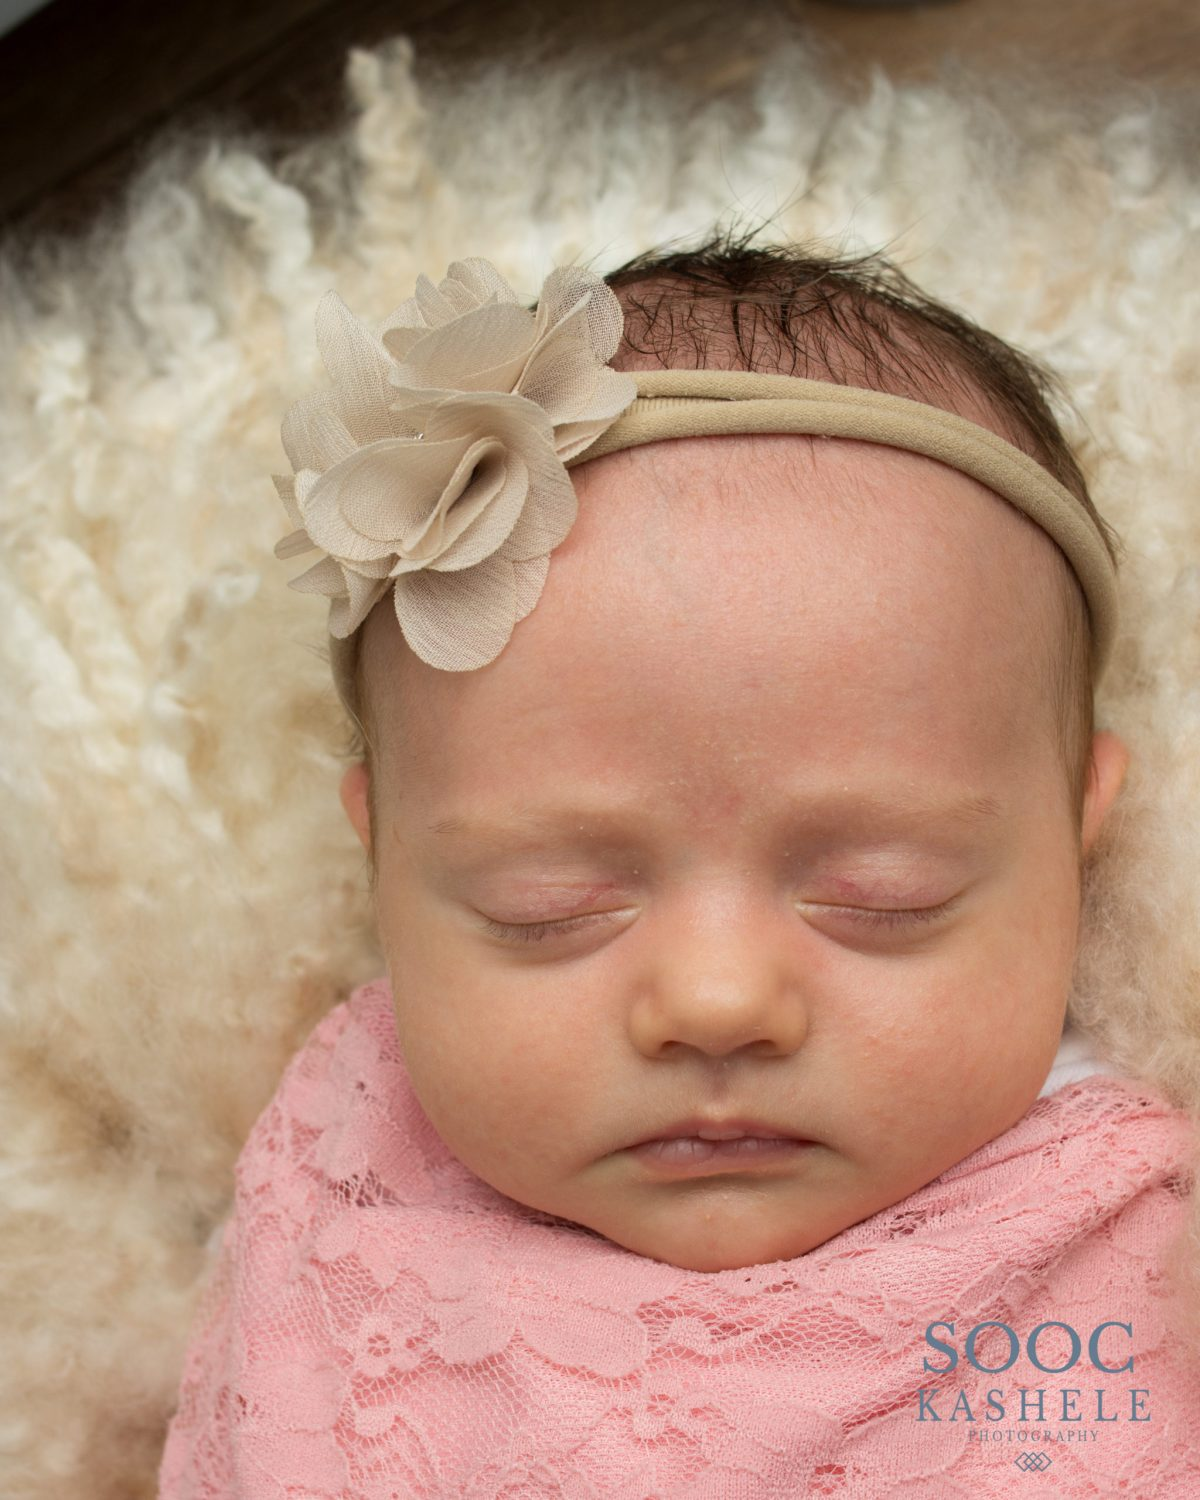 Straight Out Of Camera close up image for newborn skin peeling professional photo editing post